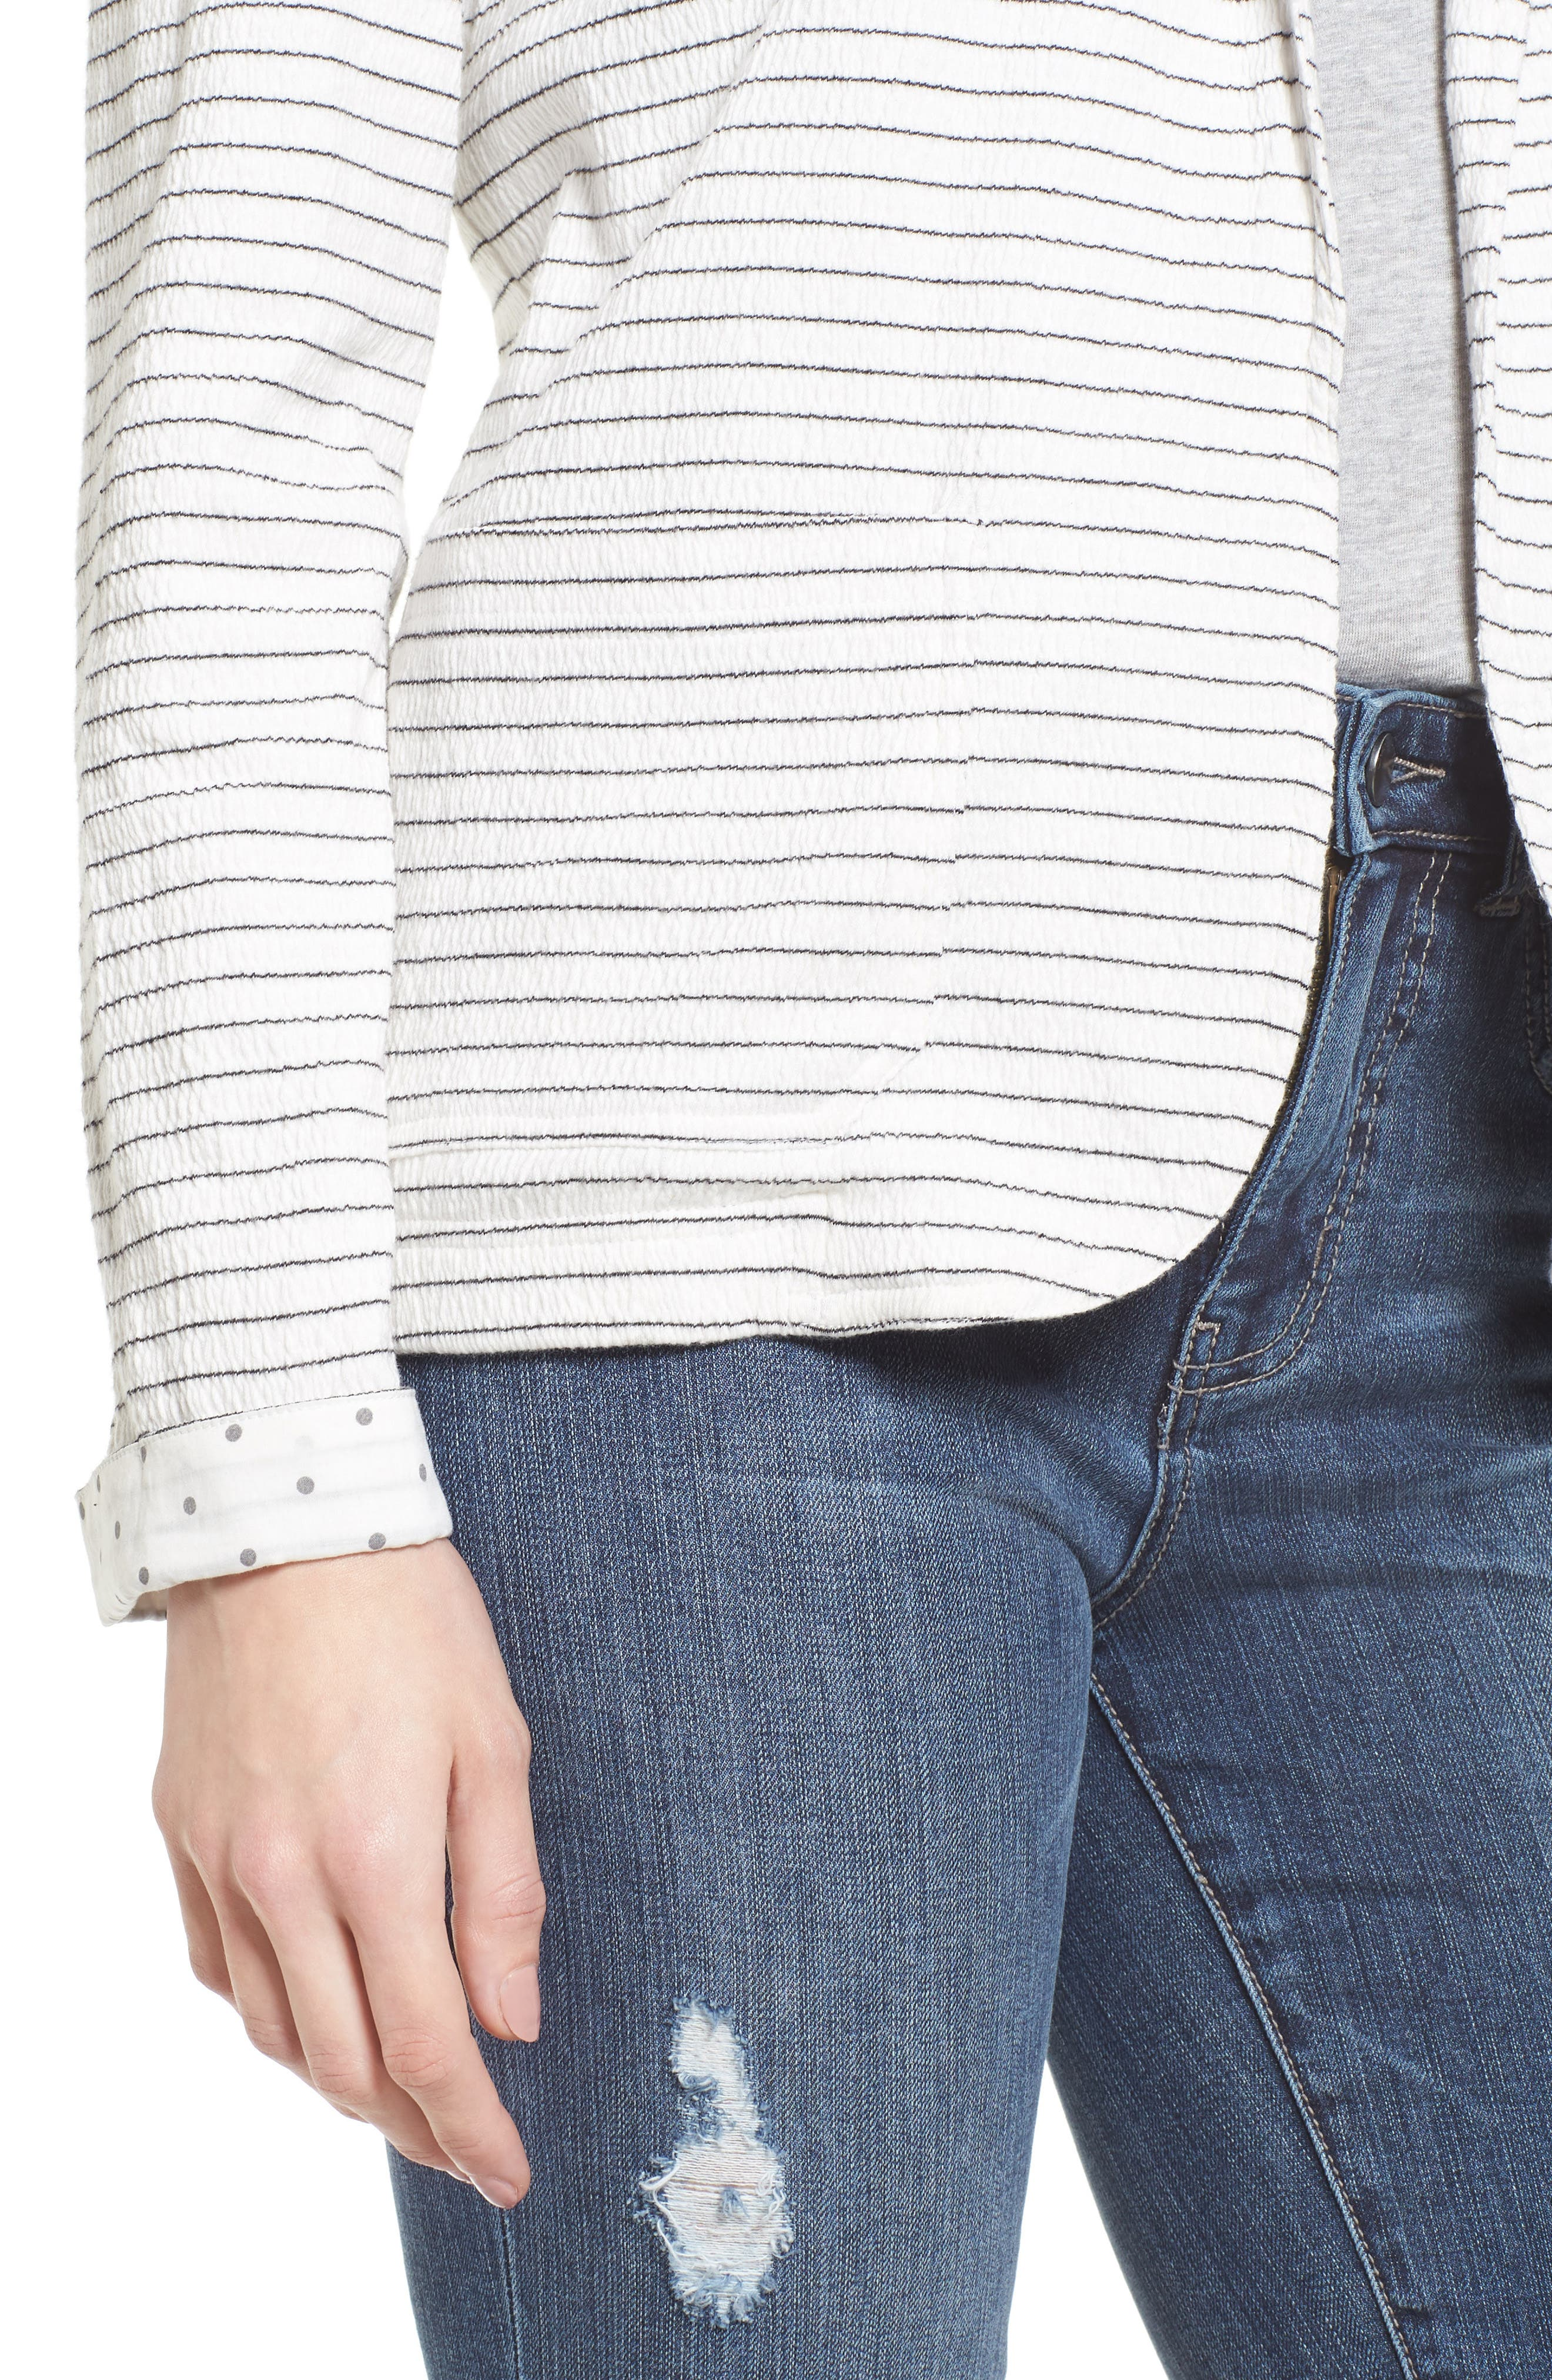 Crinkle Stretch Cotton Lined Blazer,                             Alternate thumbnail 4, color,                             Ivory- Black Stripe